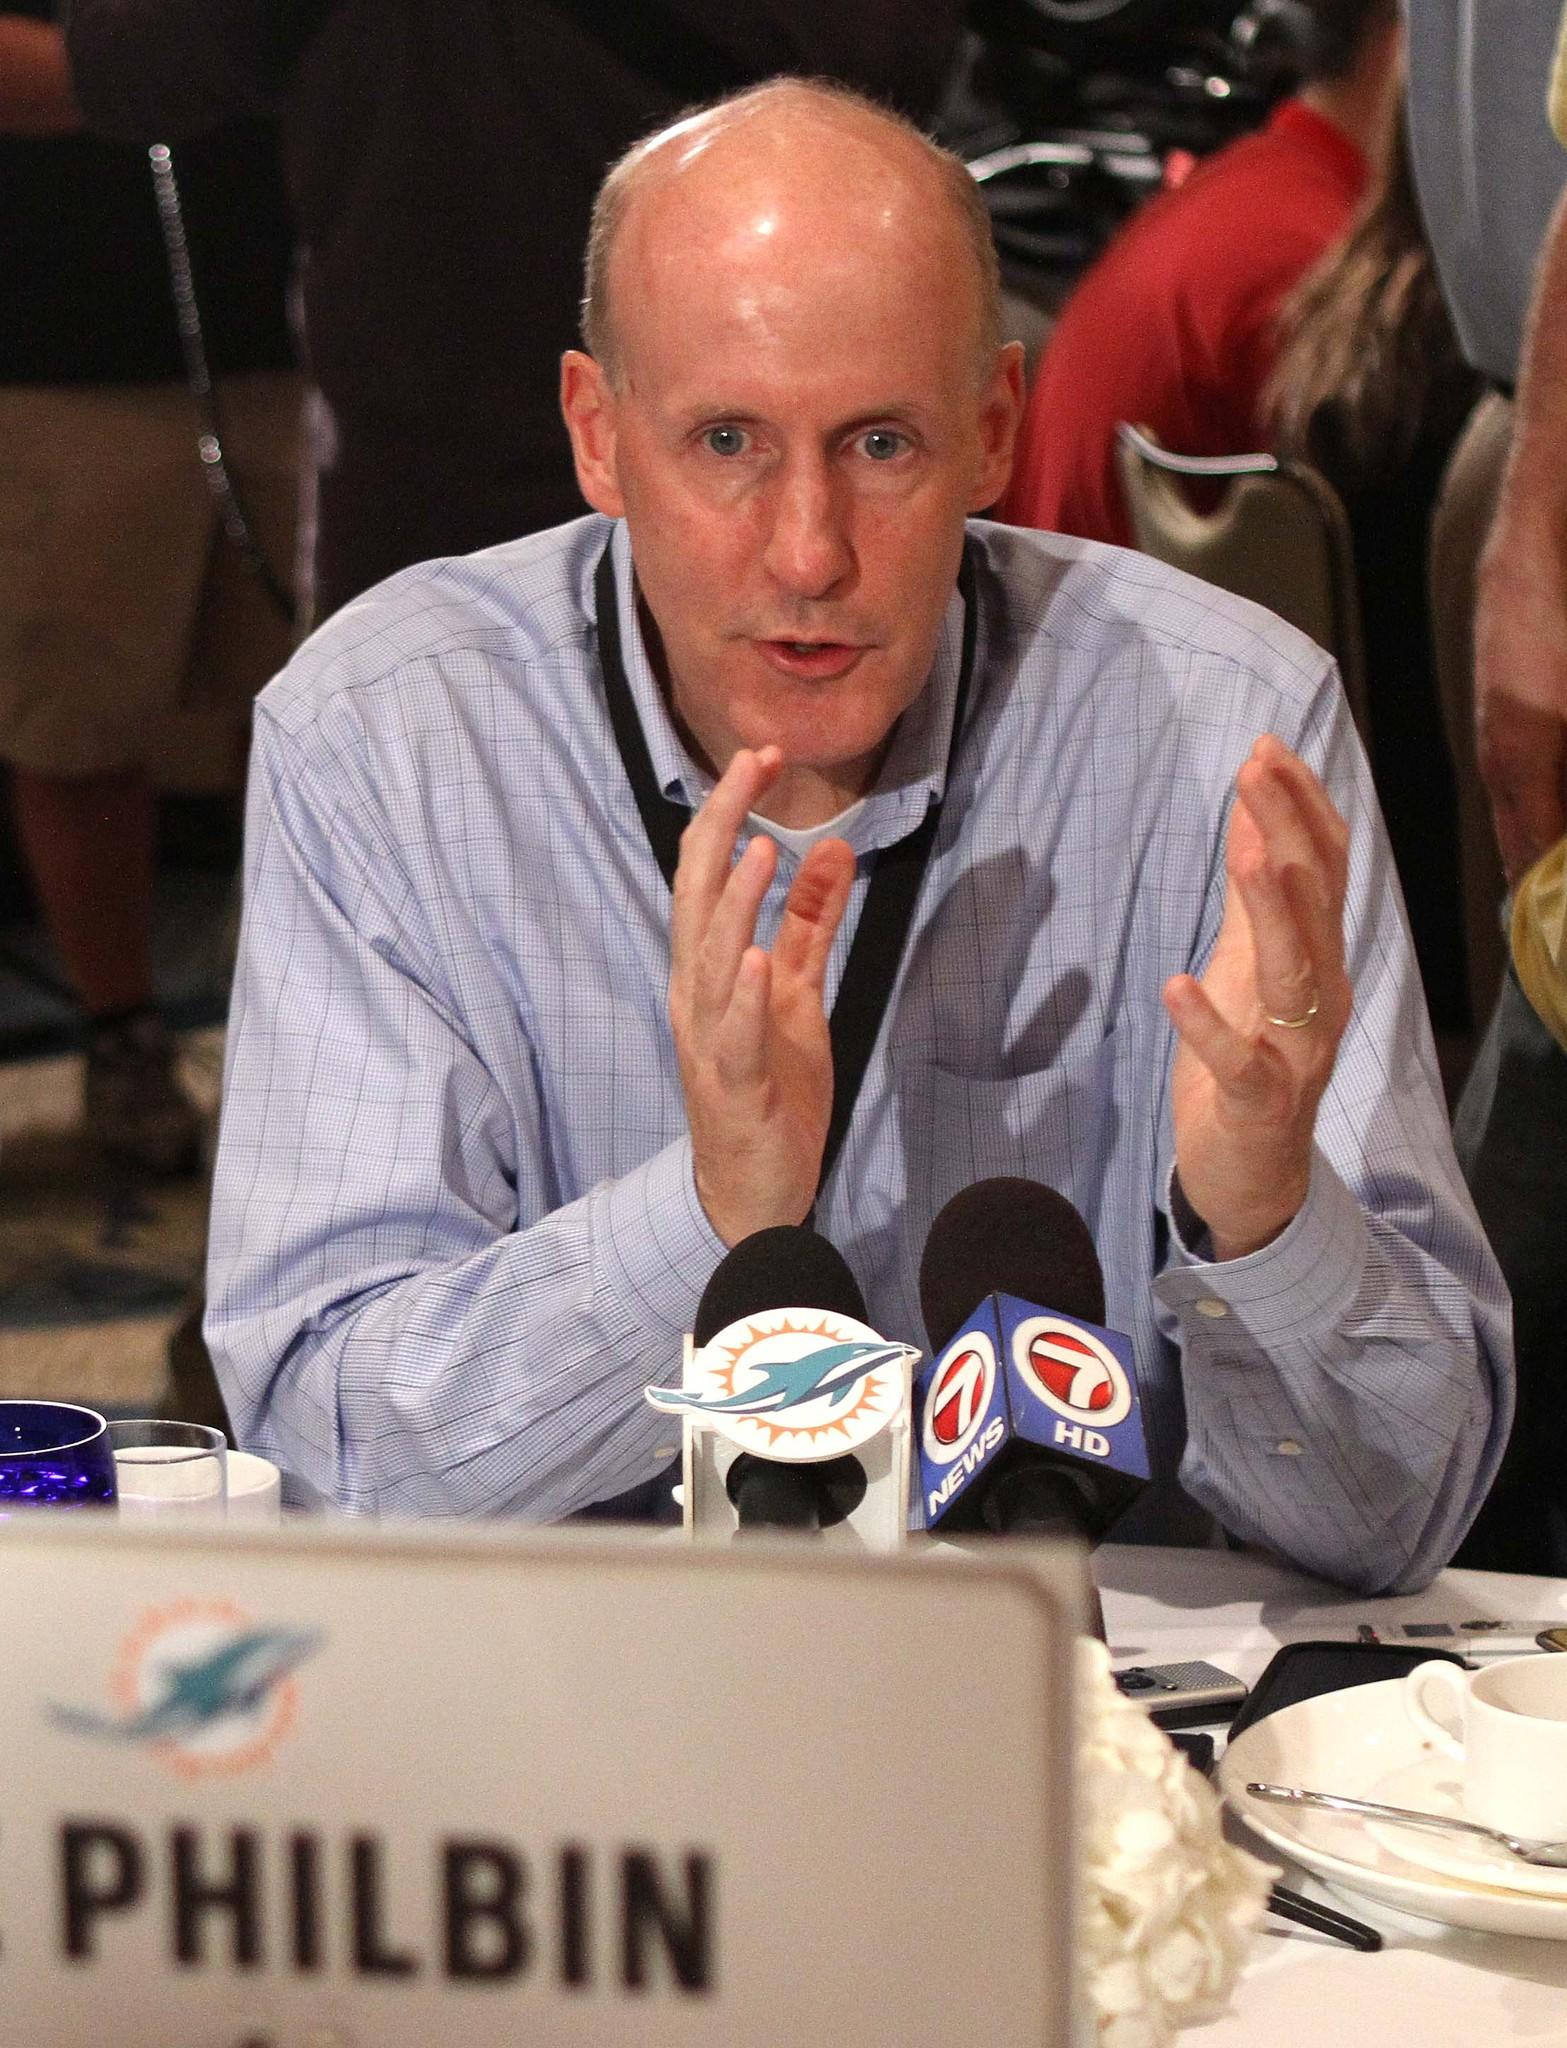 Miami Dolphins head coach Joe Philbin talks to reporters during the NFL meetings in Orlando.